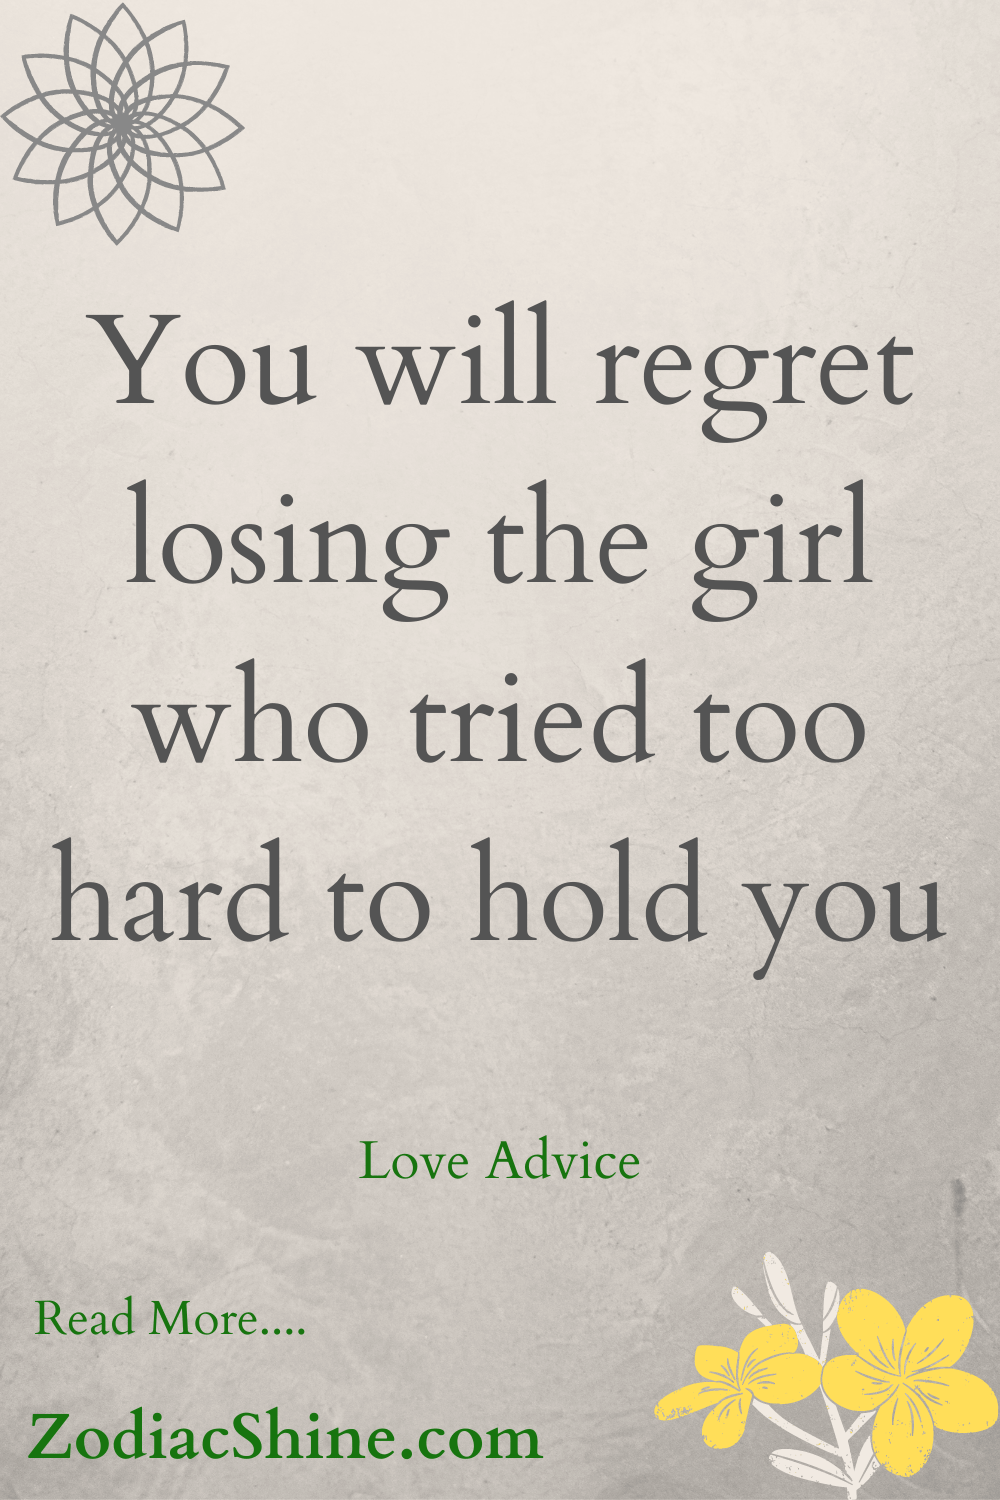 You will regret losing the girl who tried too hard to hold you